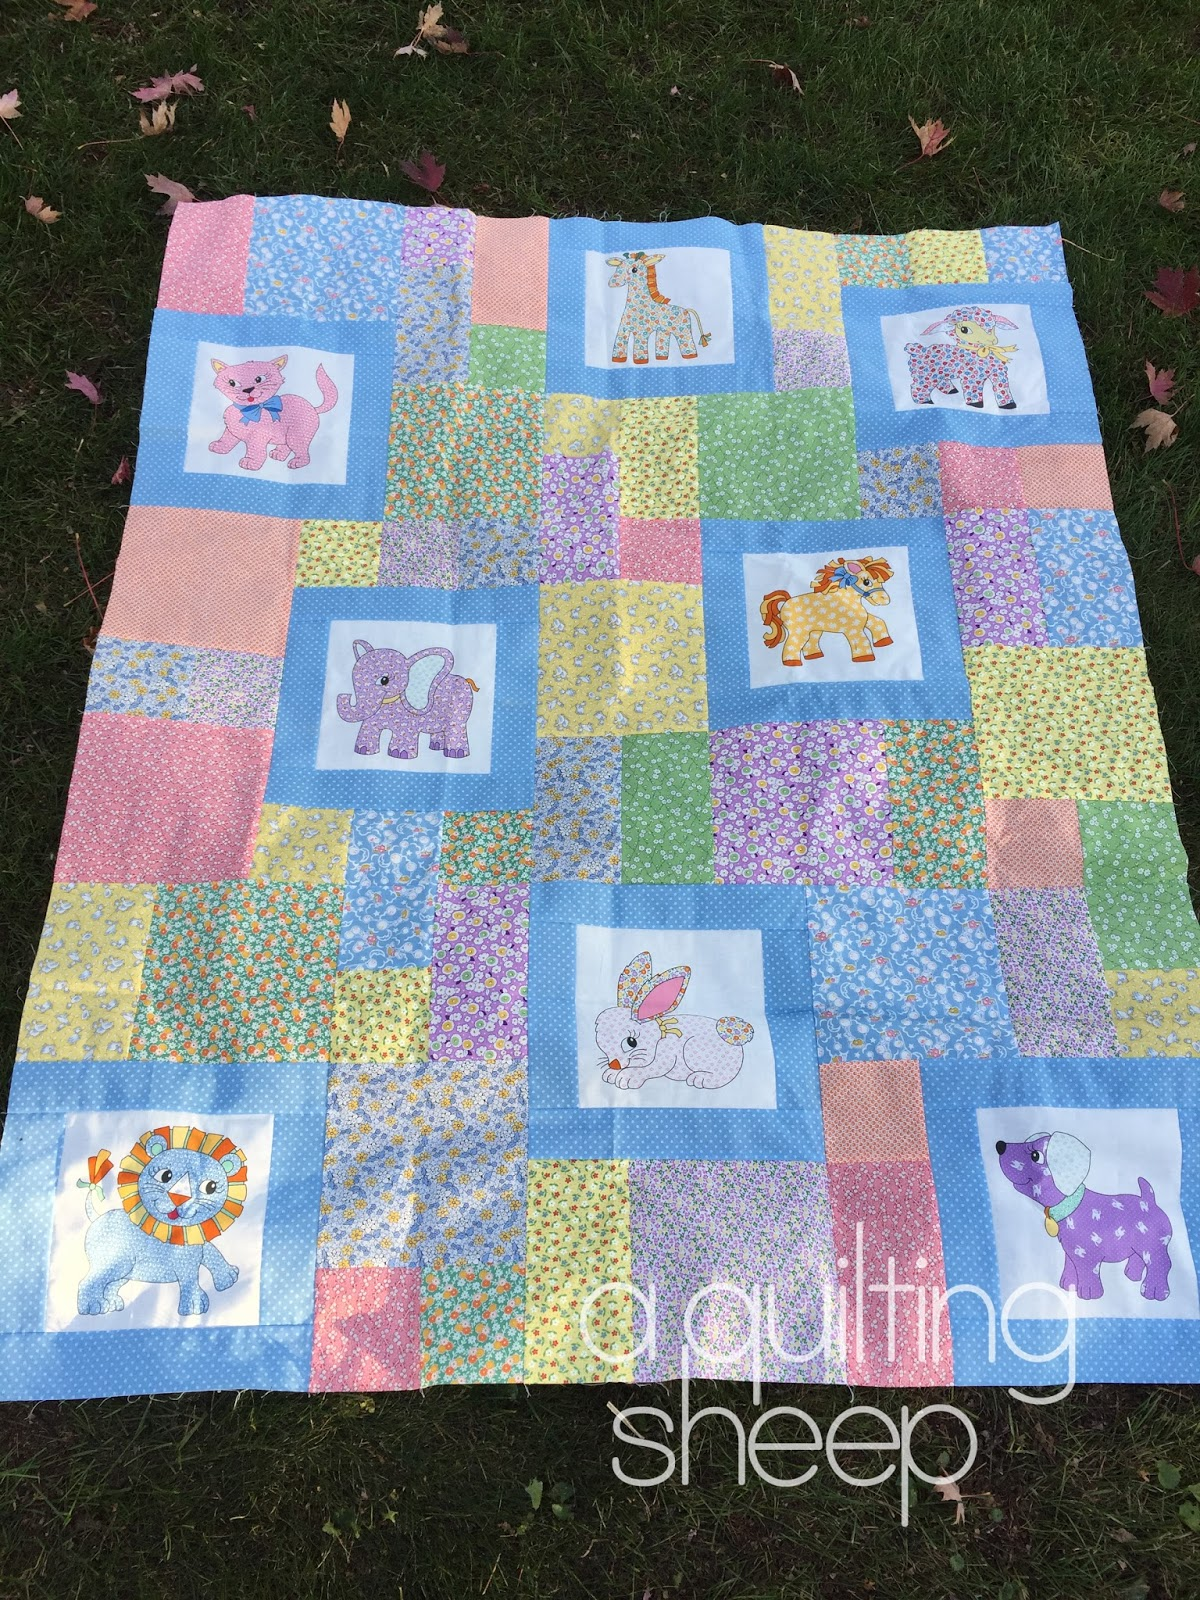 A Quilting Sheep: Quick easy quilt patterns